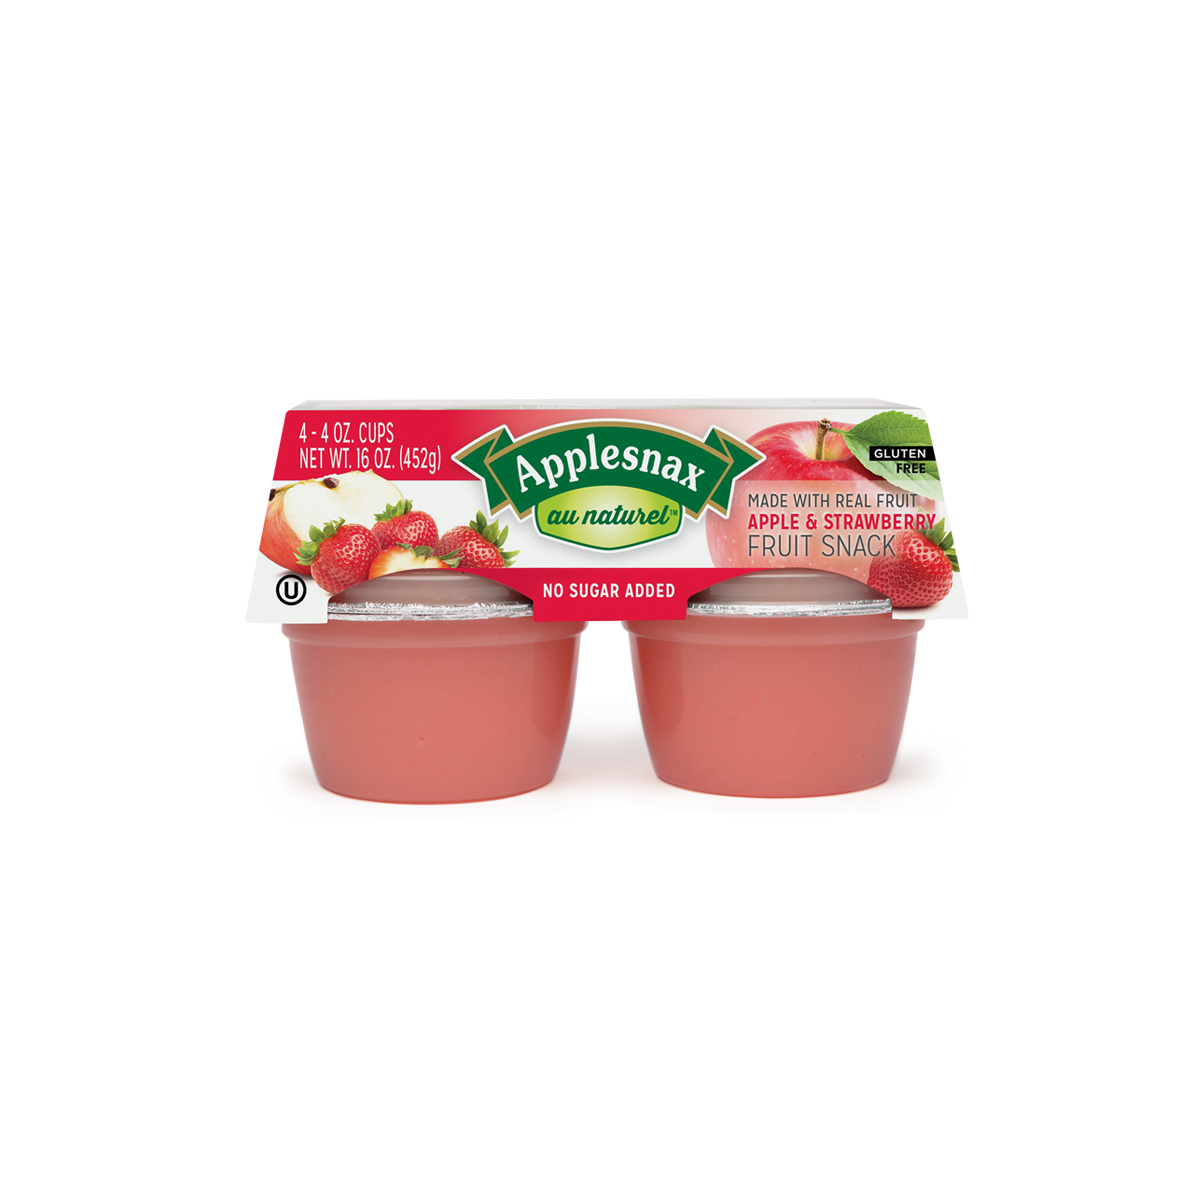 Au Naturel Apple Strawberry Usa 4 Cups